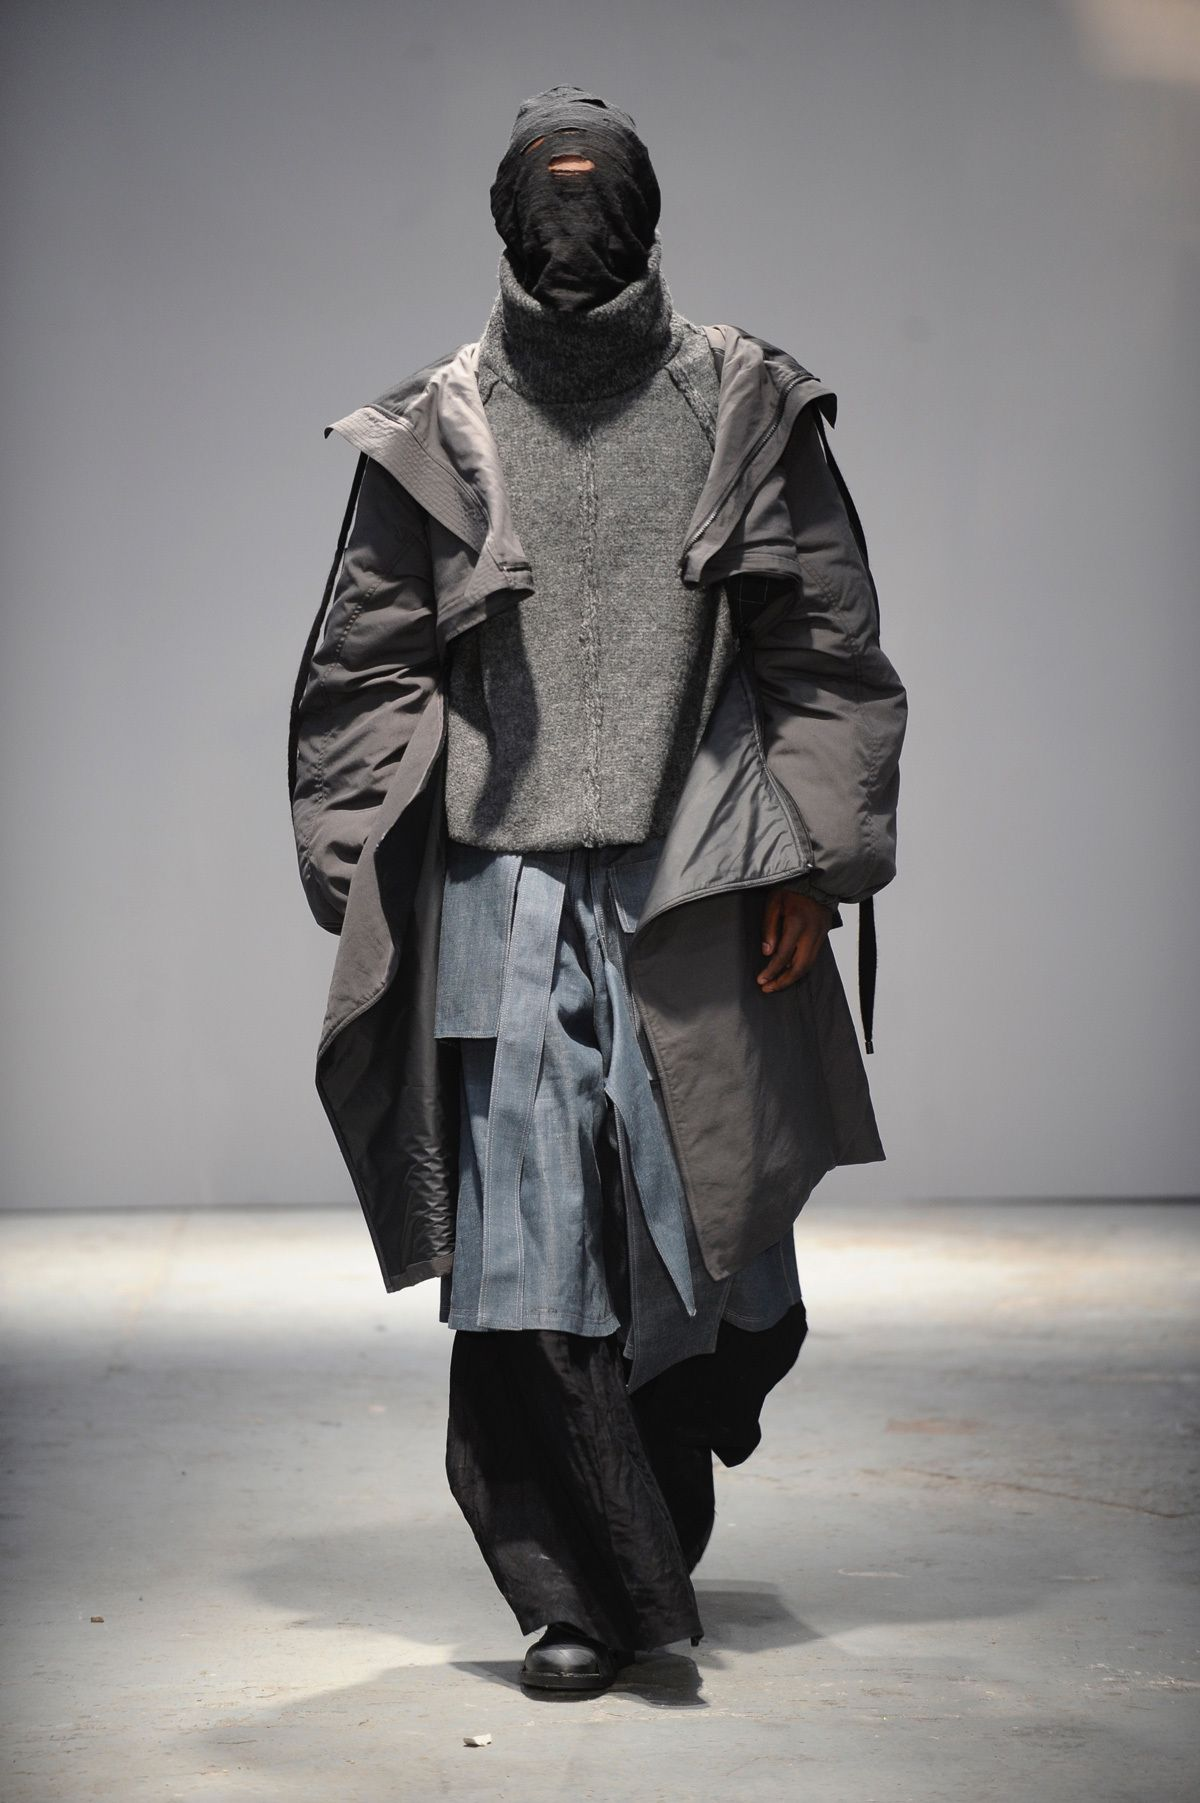 London College Of Fashion Ba Collection Of The Year Winners Announced Dystopian Fashion London College Of Fashion Cyberpunk Fashion